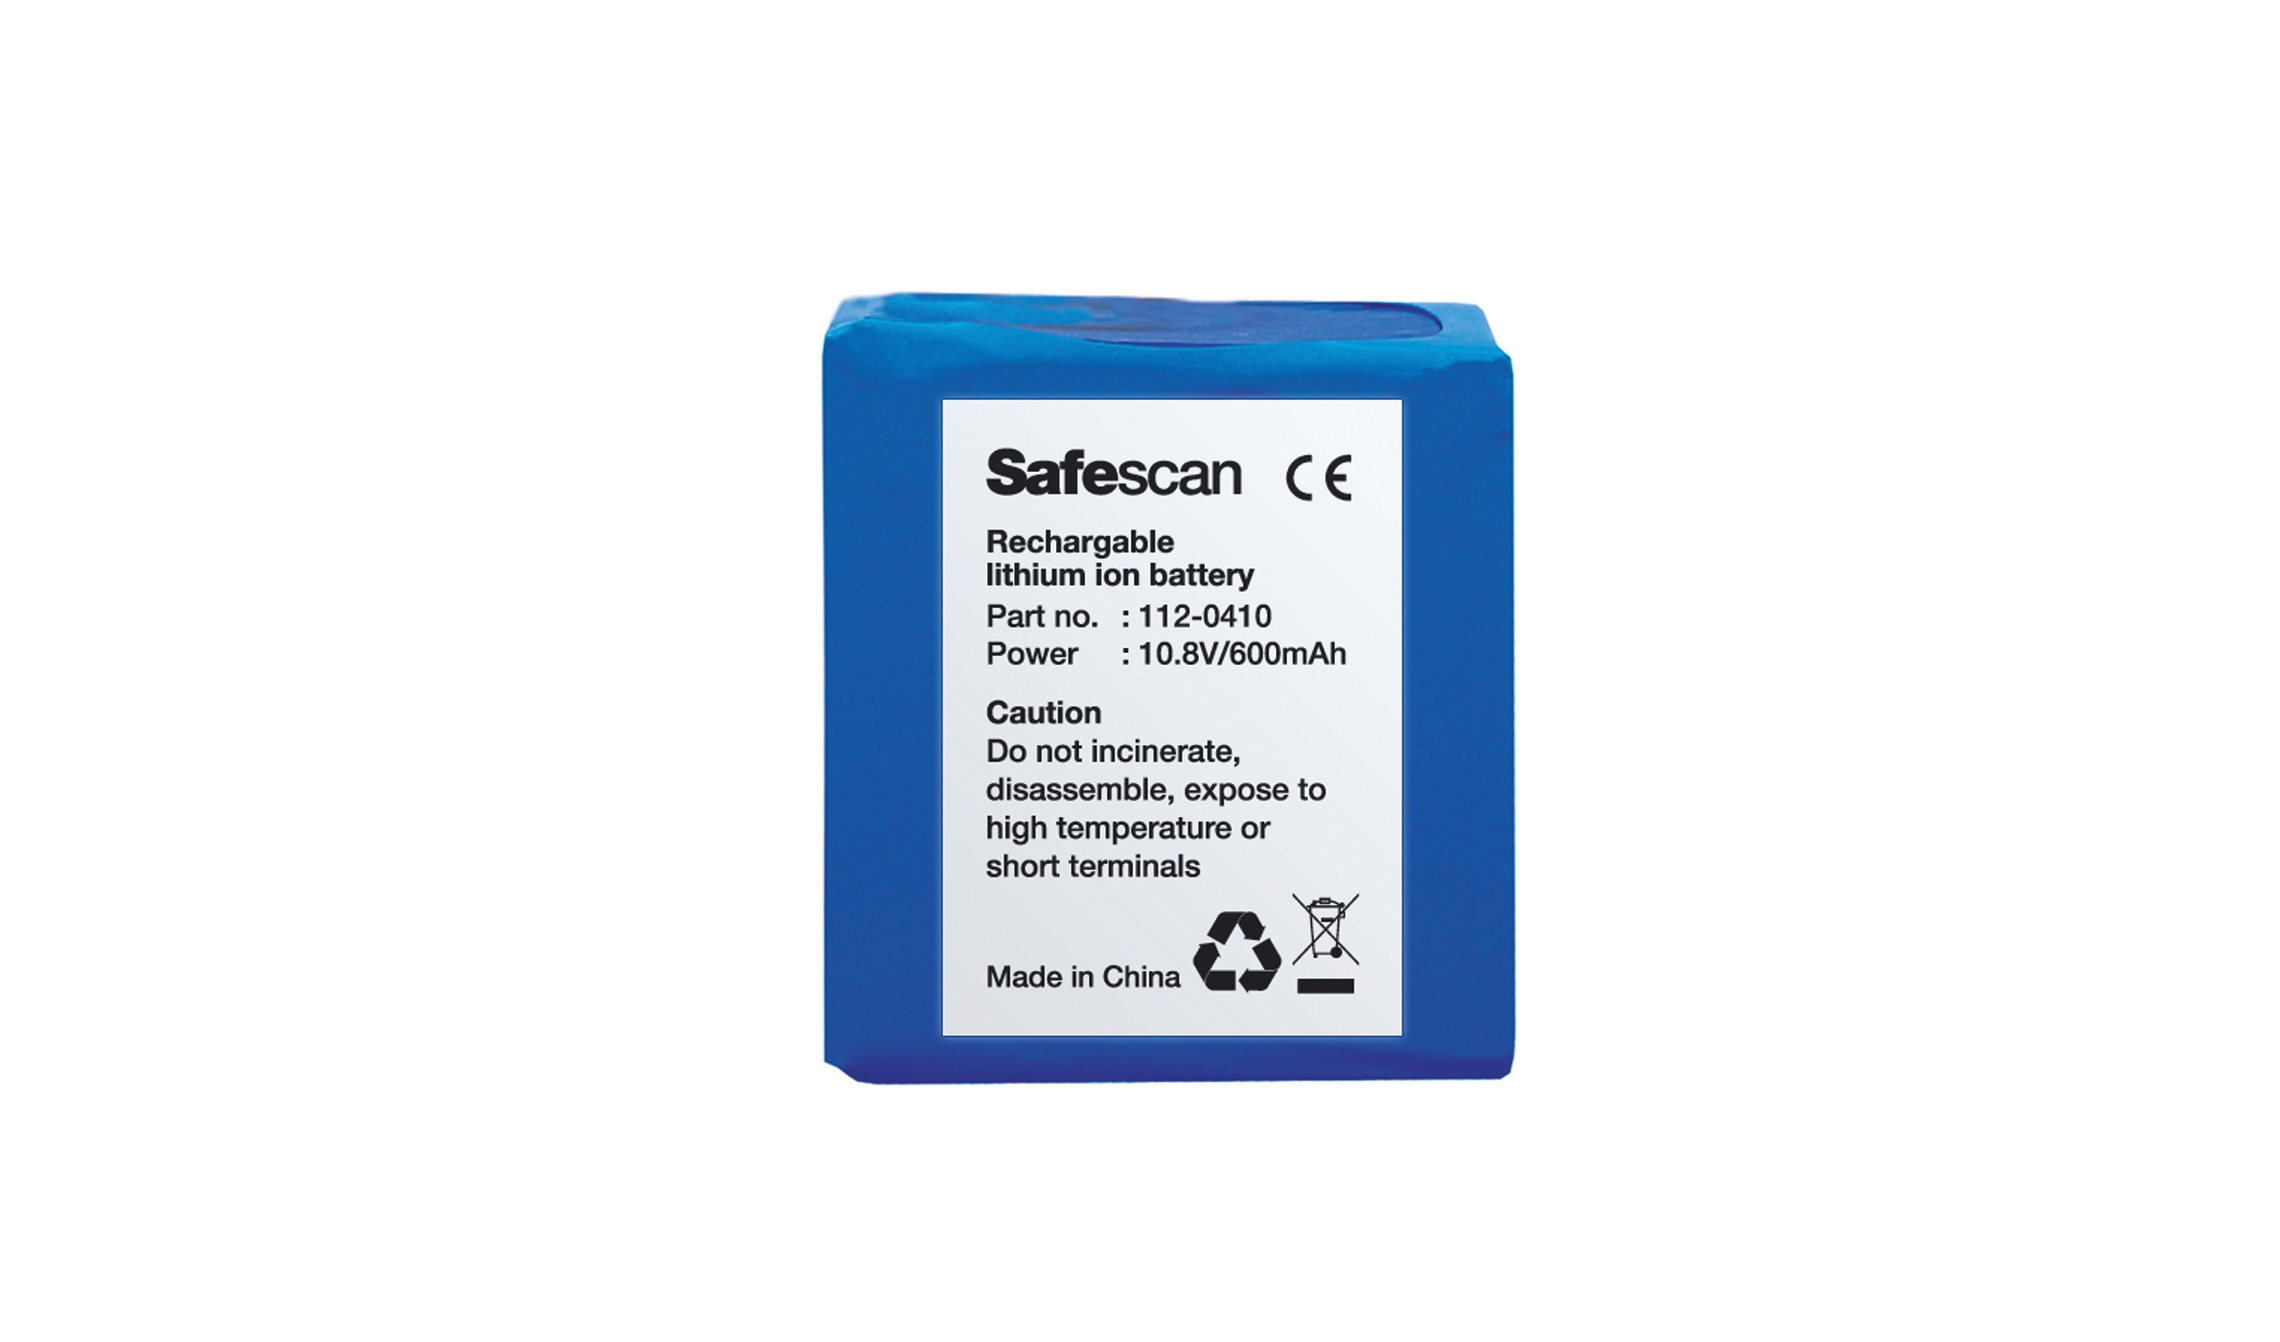 safescan-lb-105-batterie-rechargeable